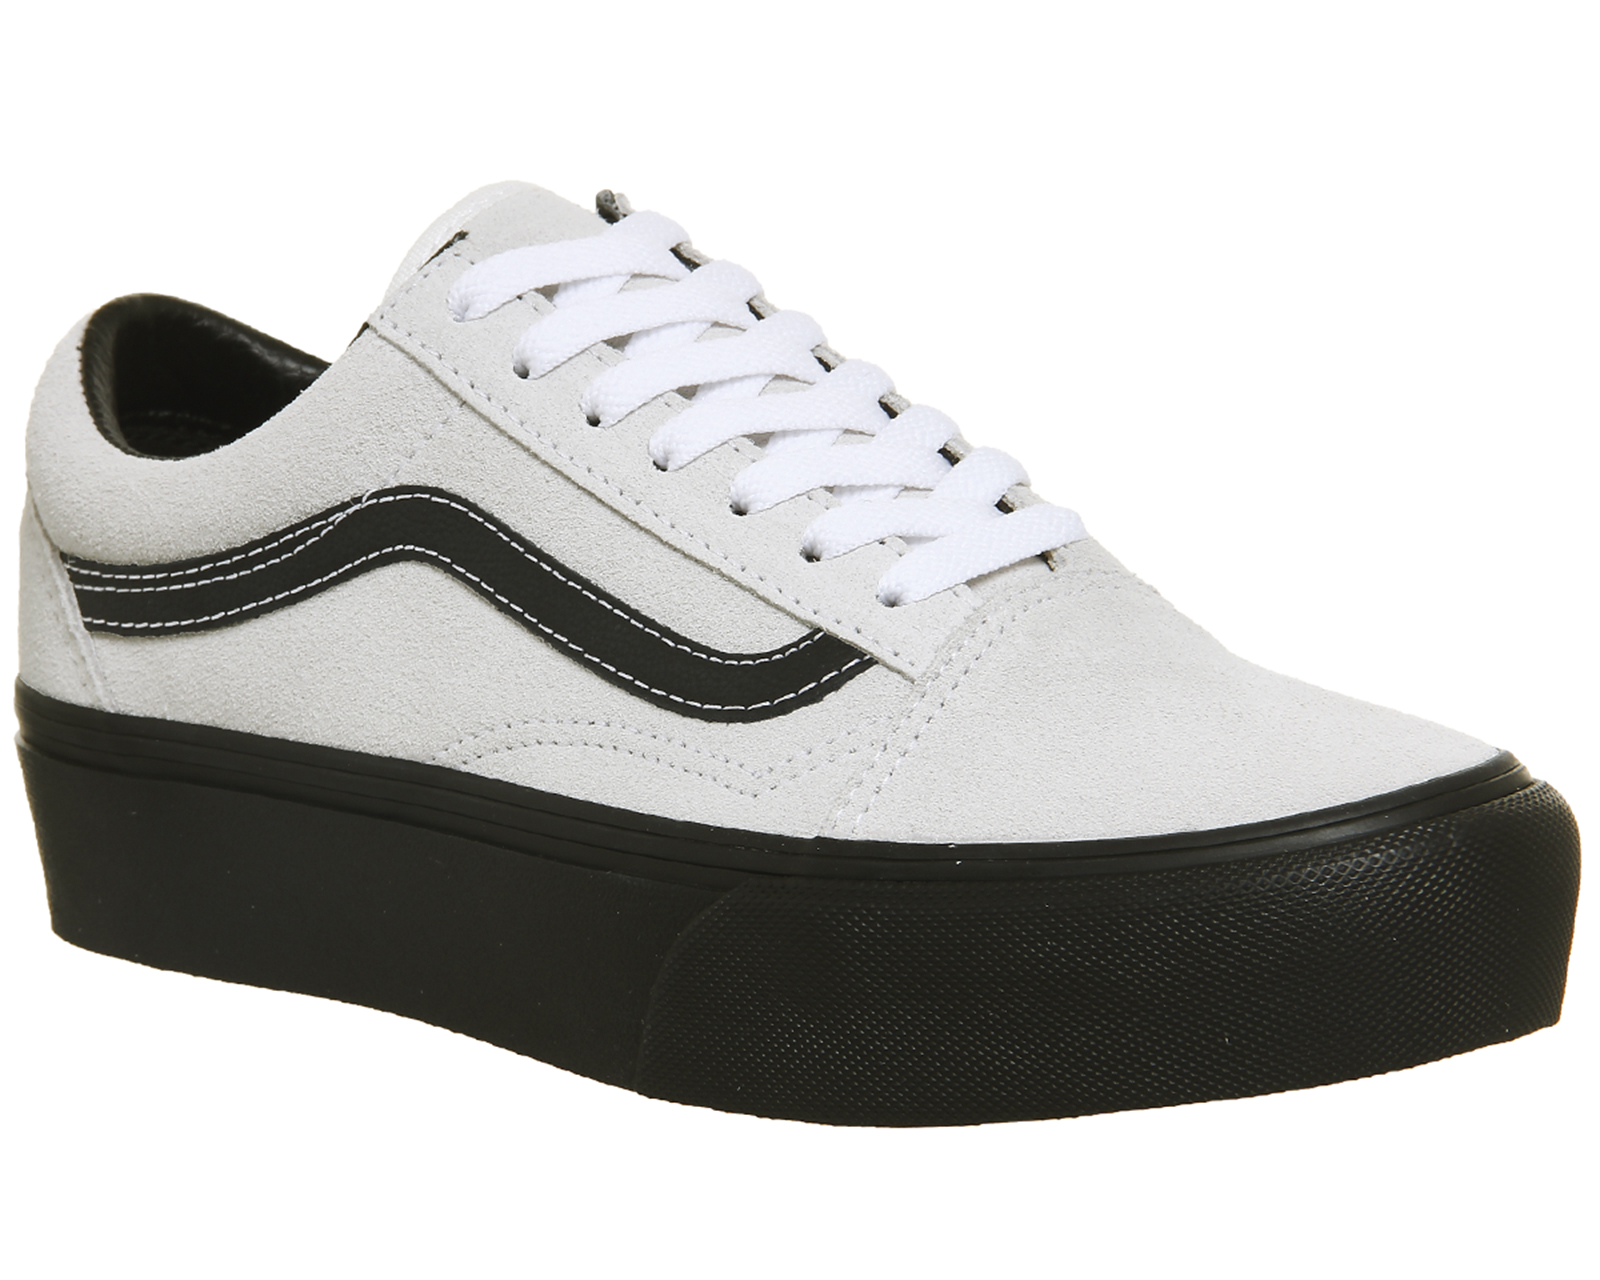 0ab4b30b Sentinel Womens Vans Old Skool Platforms BLANC BLACK Trainers Shoes